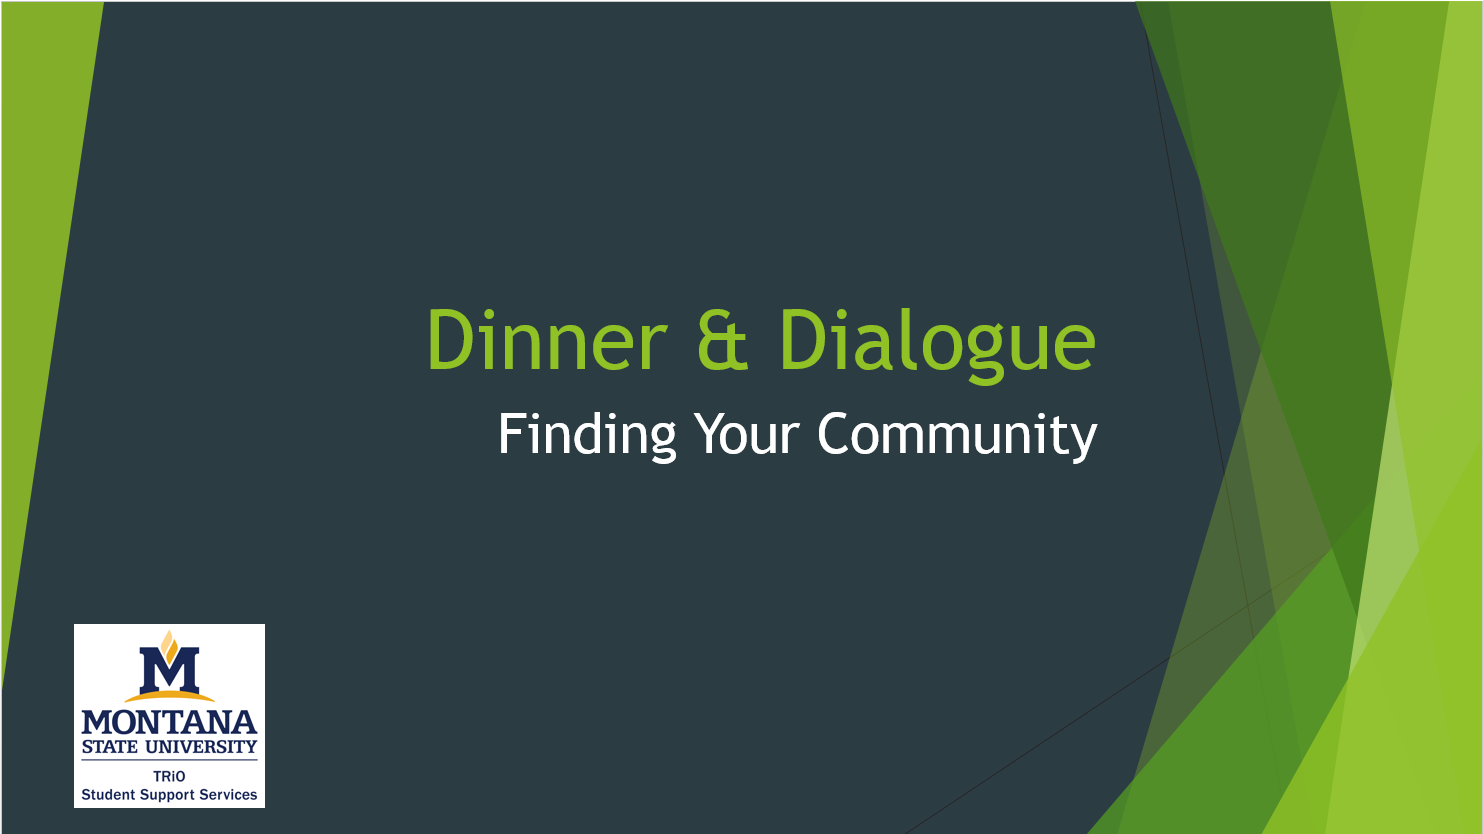 Dinner and Dialogue Finding Your Community